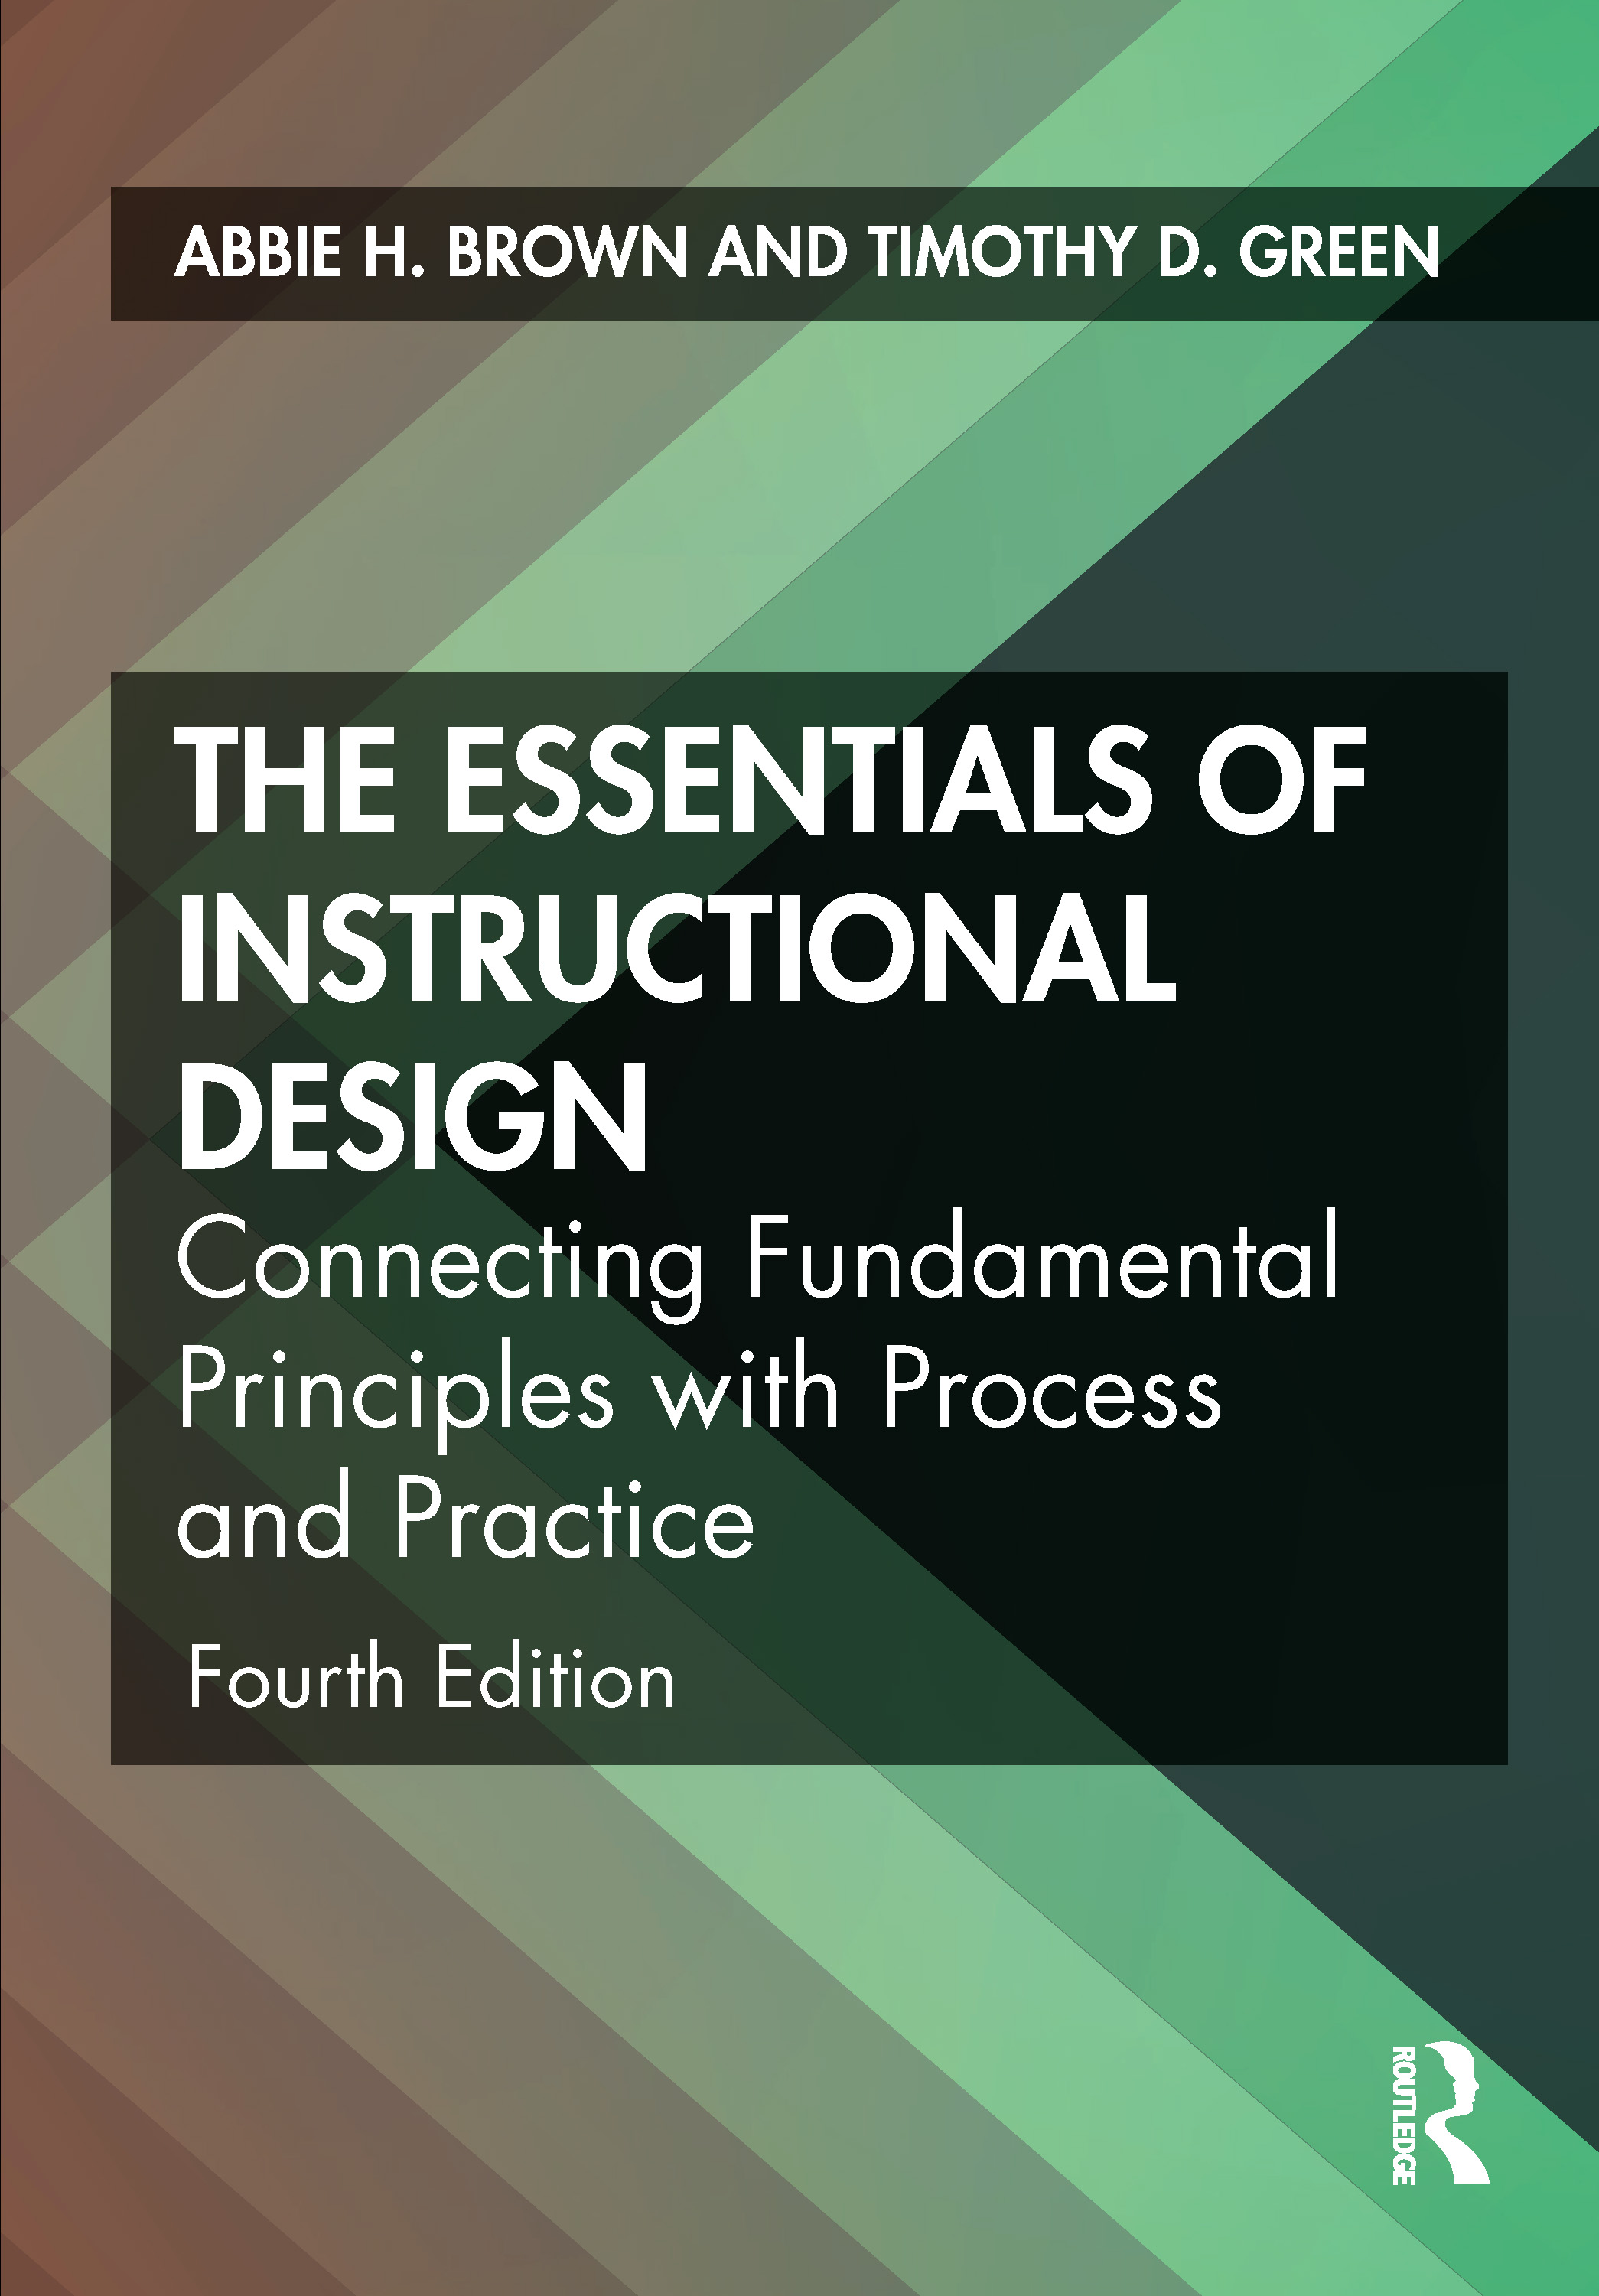 The Essentials of Instructional Design: Connecting Fundamental Principles with Process and Practice book cover